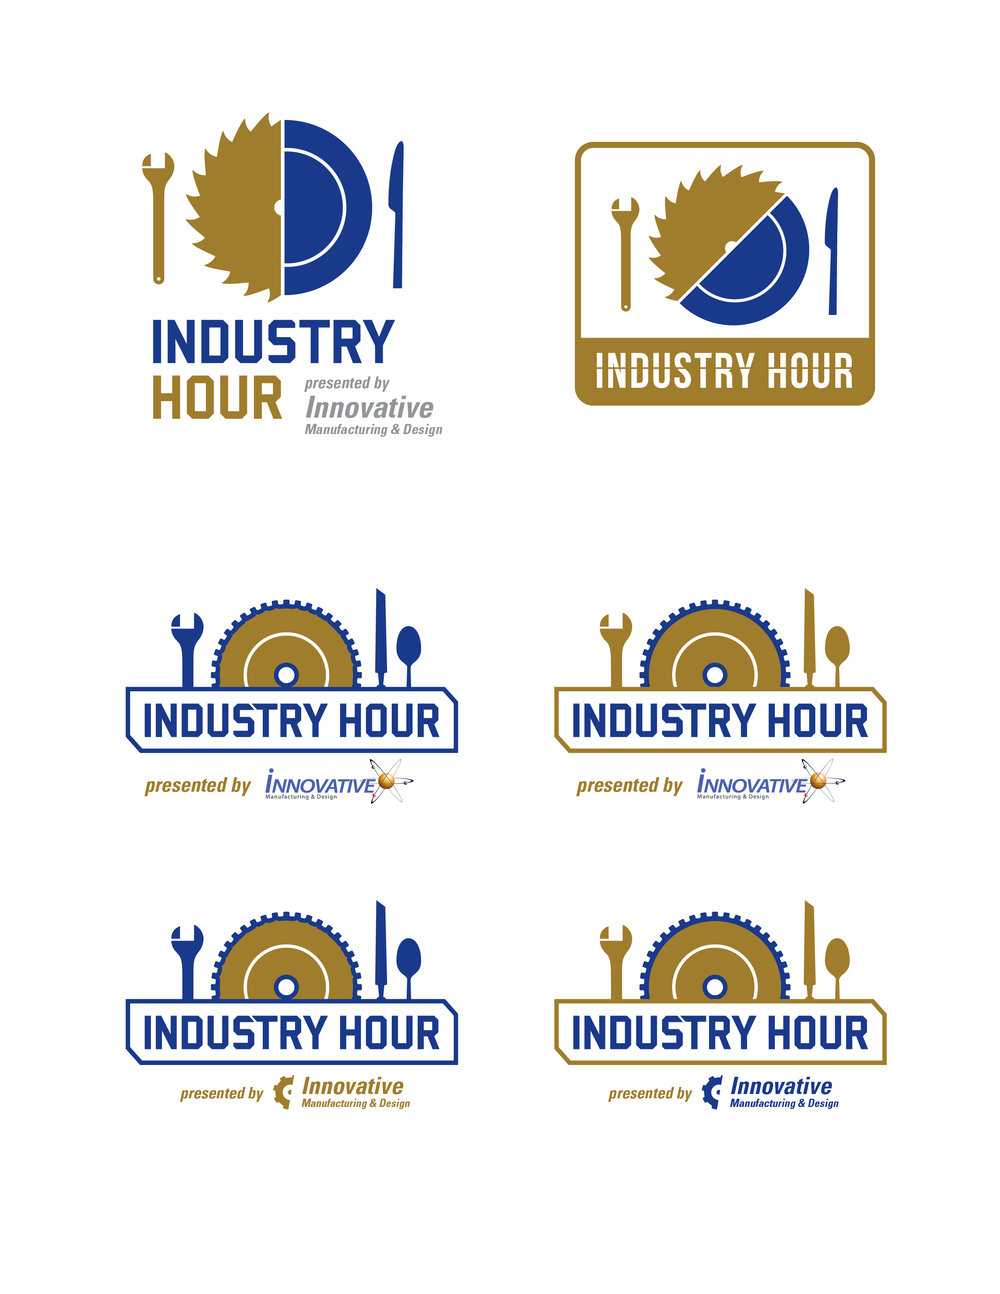 industry-hour-final-design-full-color.jpg